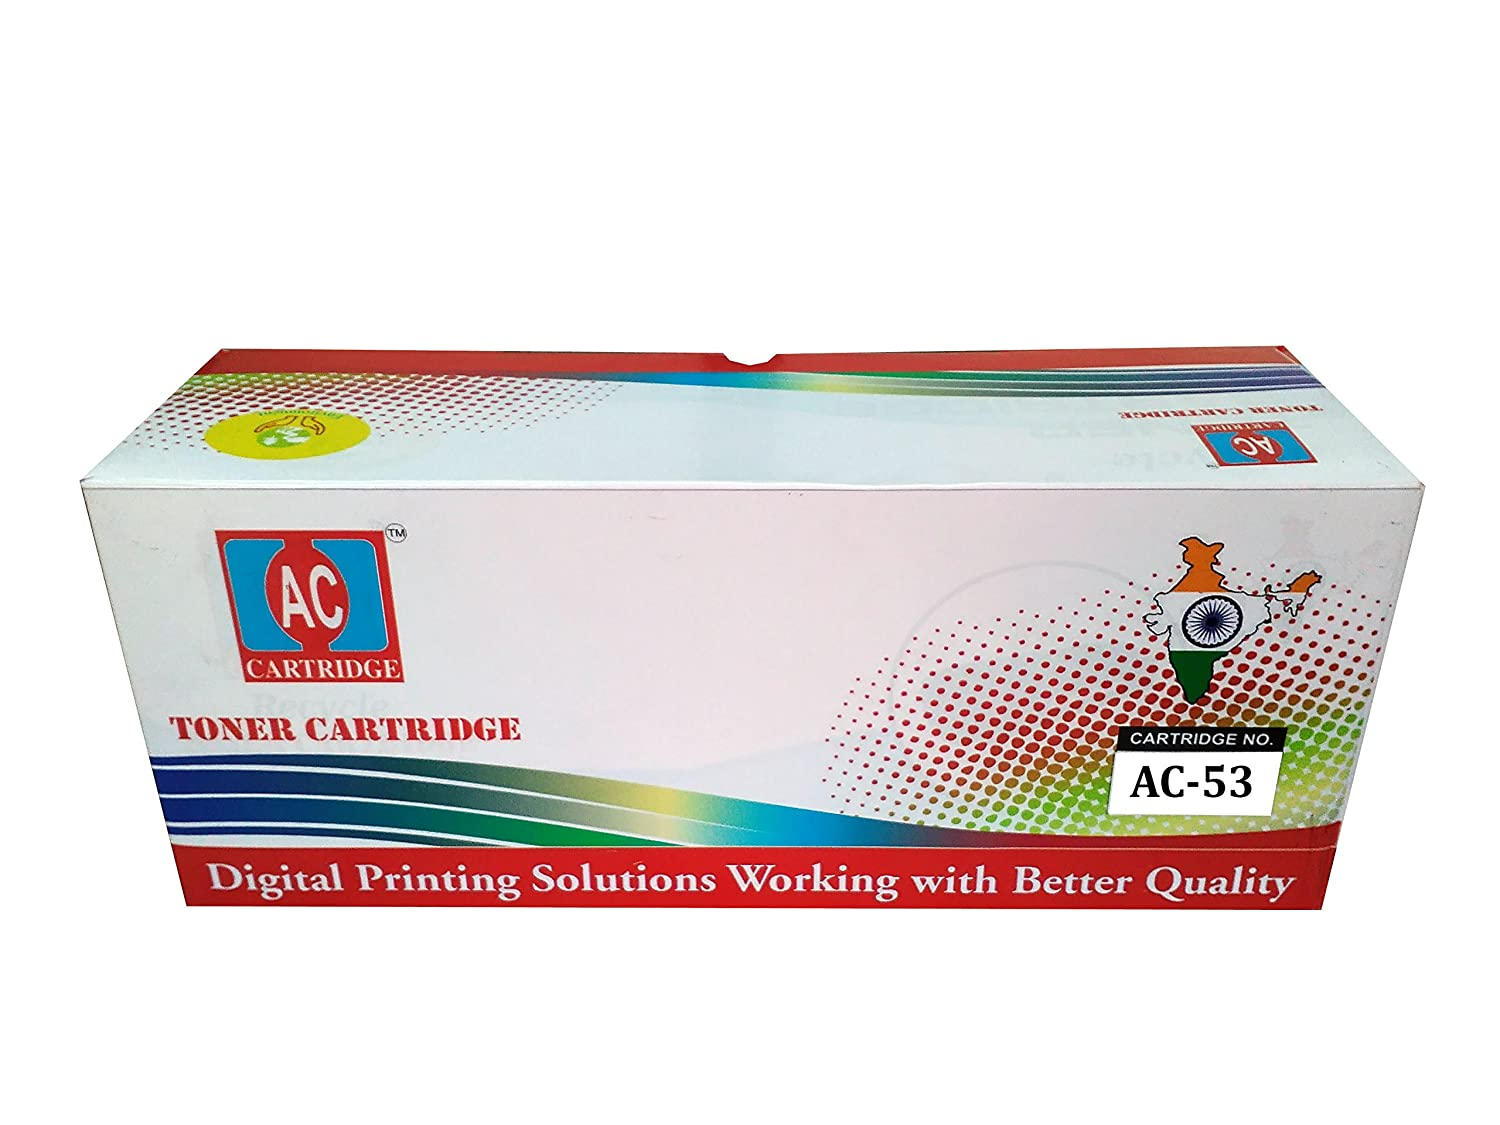 AC-Cartridge 53A Black Toner Cartridge